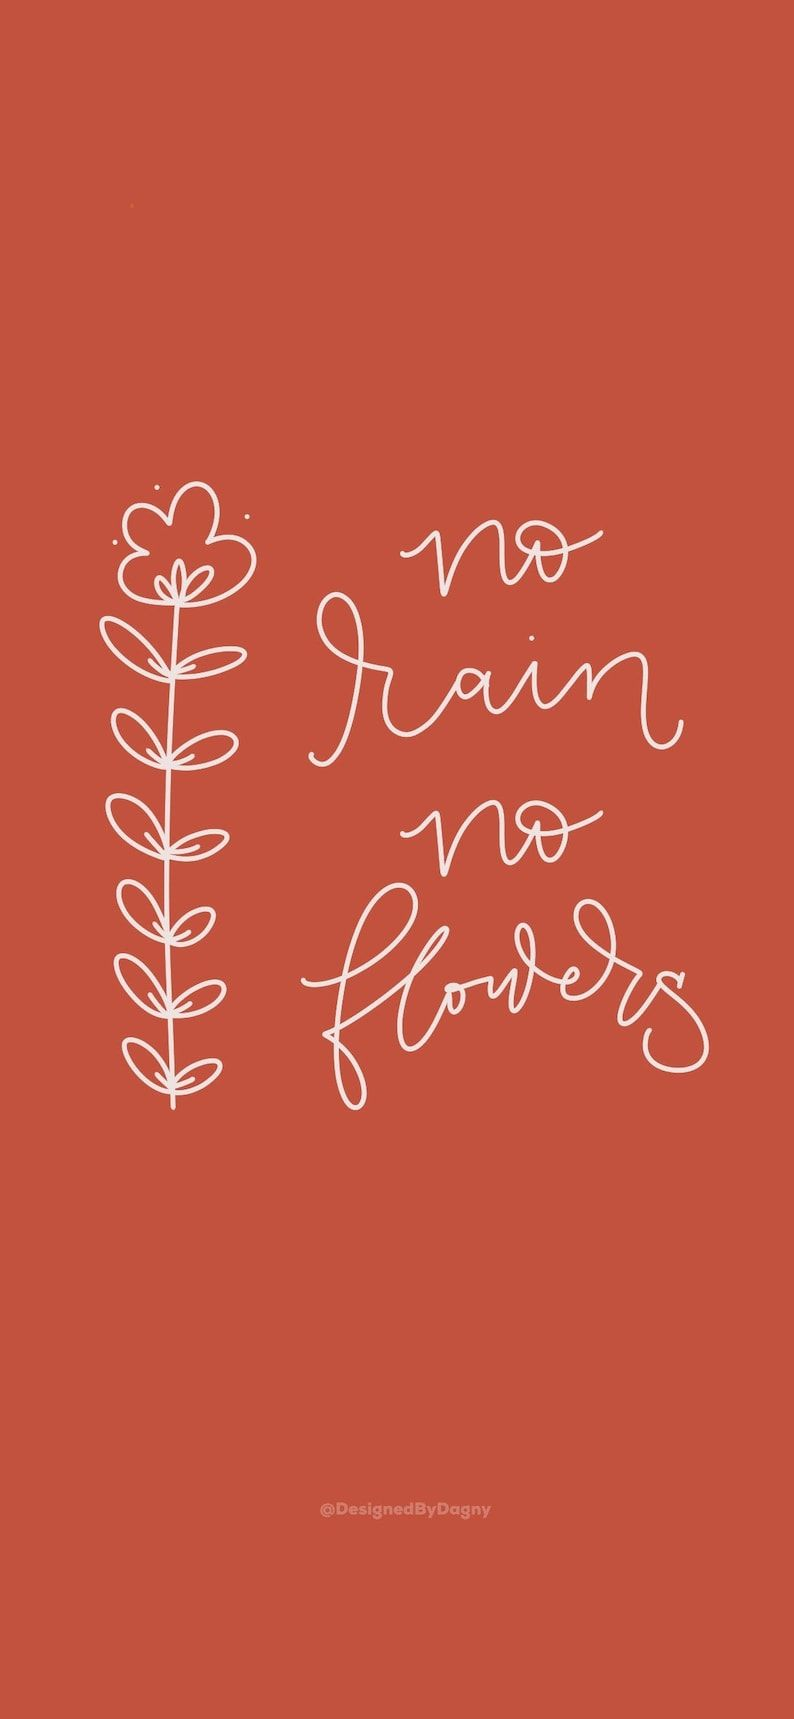 Read the full title No Rain, No Flowers Inspirational iPhone Wallpaper, Cell Phone Wallpaper, phone background, Mobile Phone Wallpaper, iPhone background